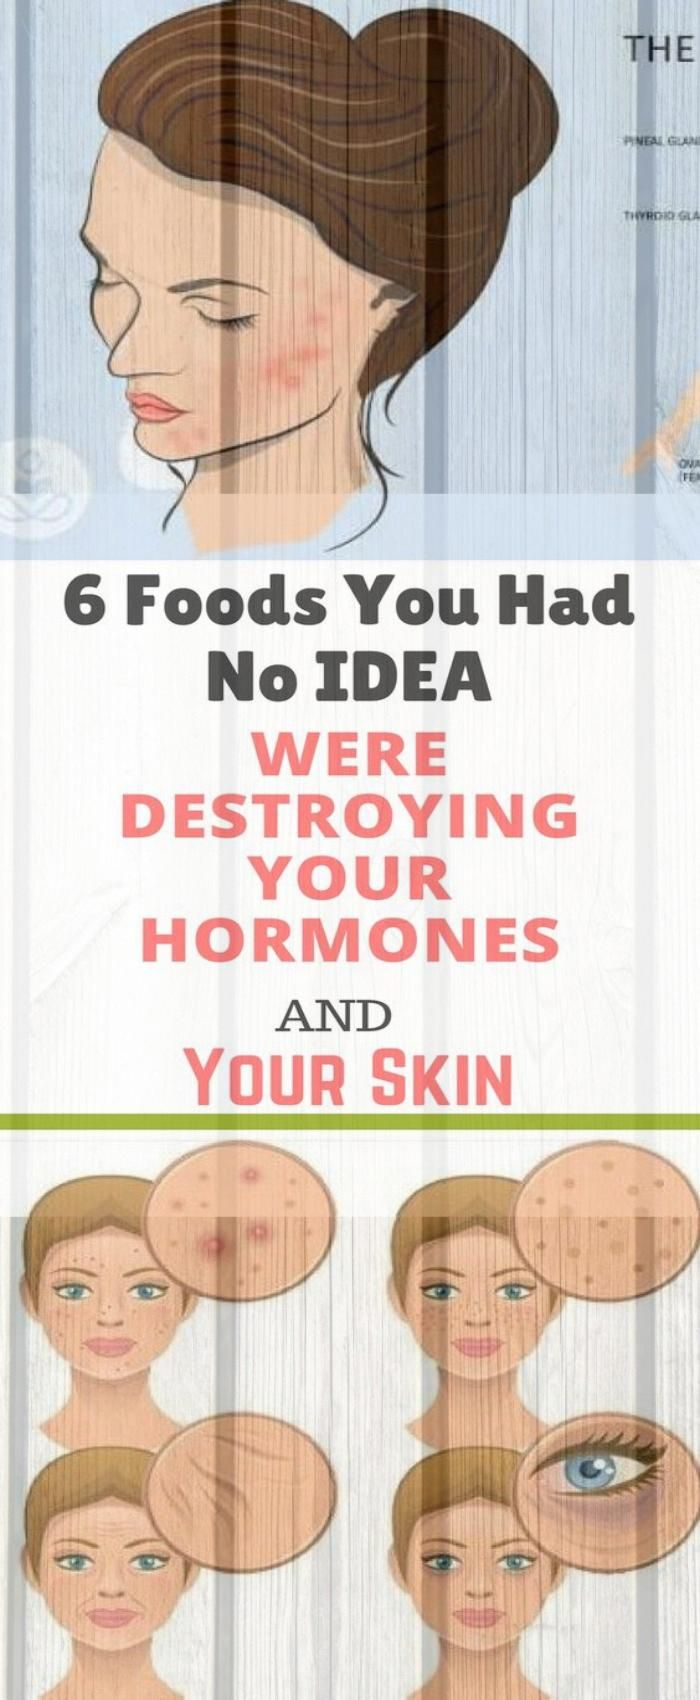 6 Foods You Had No Idea Were Destroying Your Hormones and Your Skin